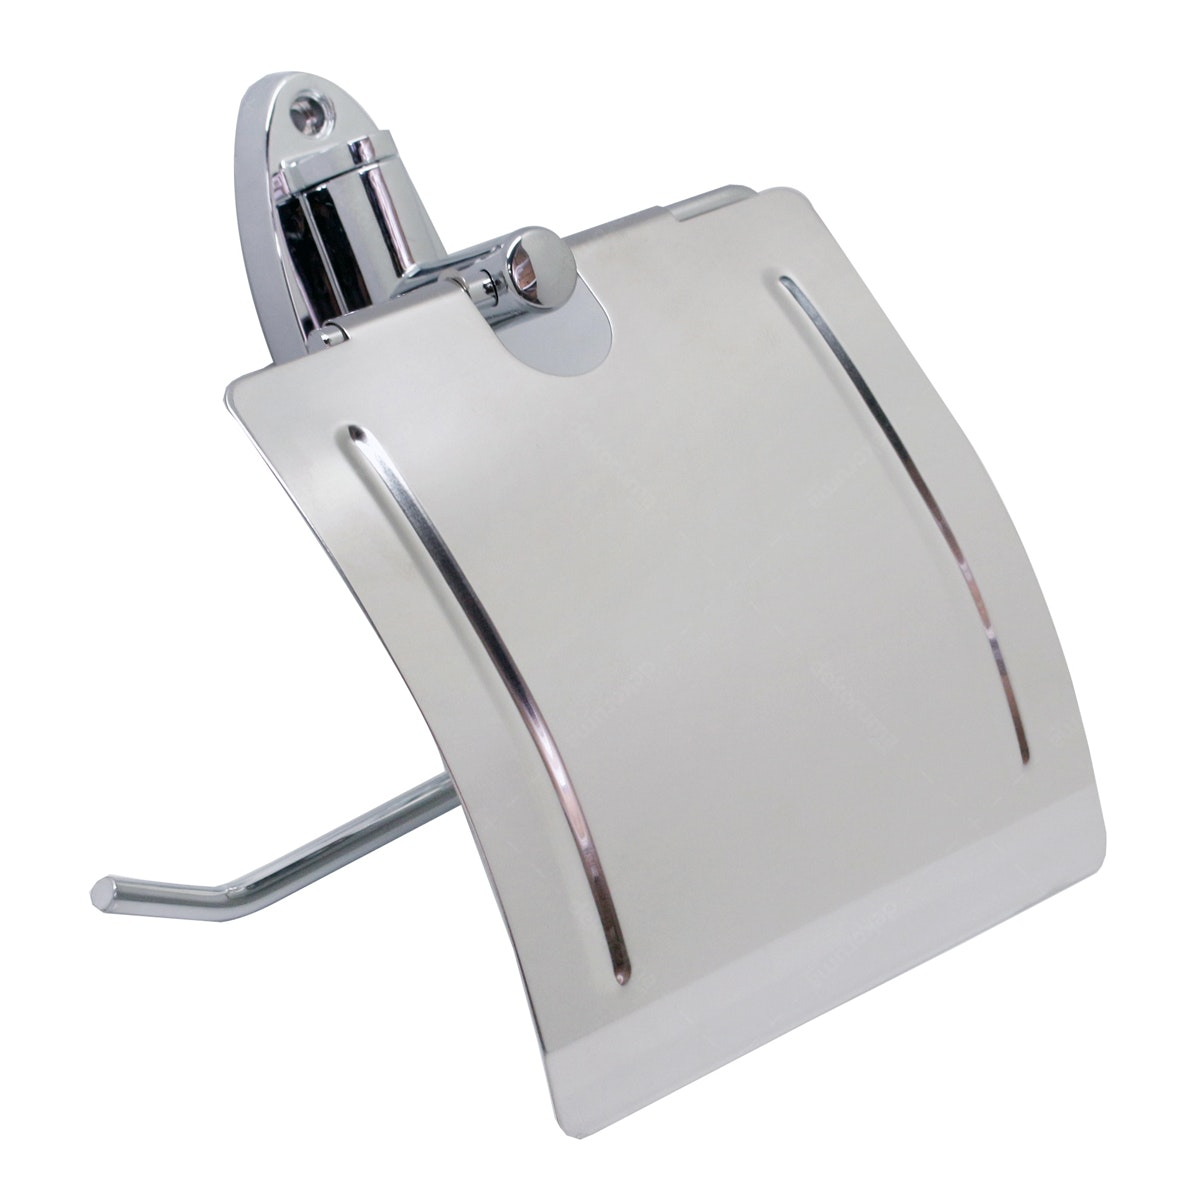 JYSK Toilet Paper Holder Medle Steel